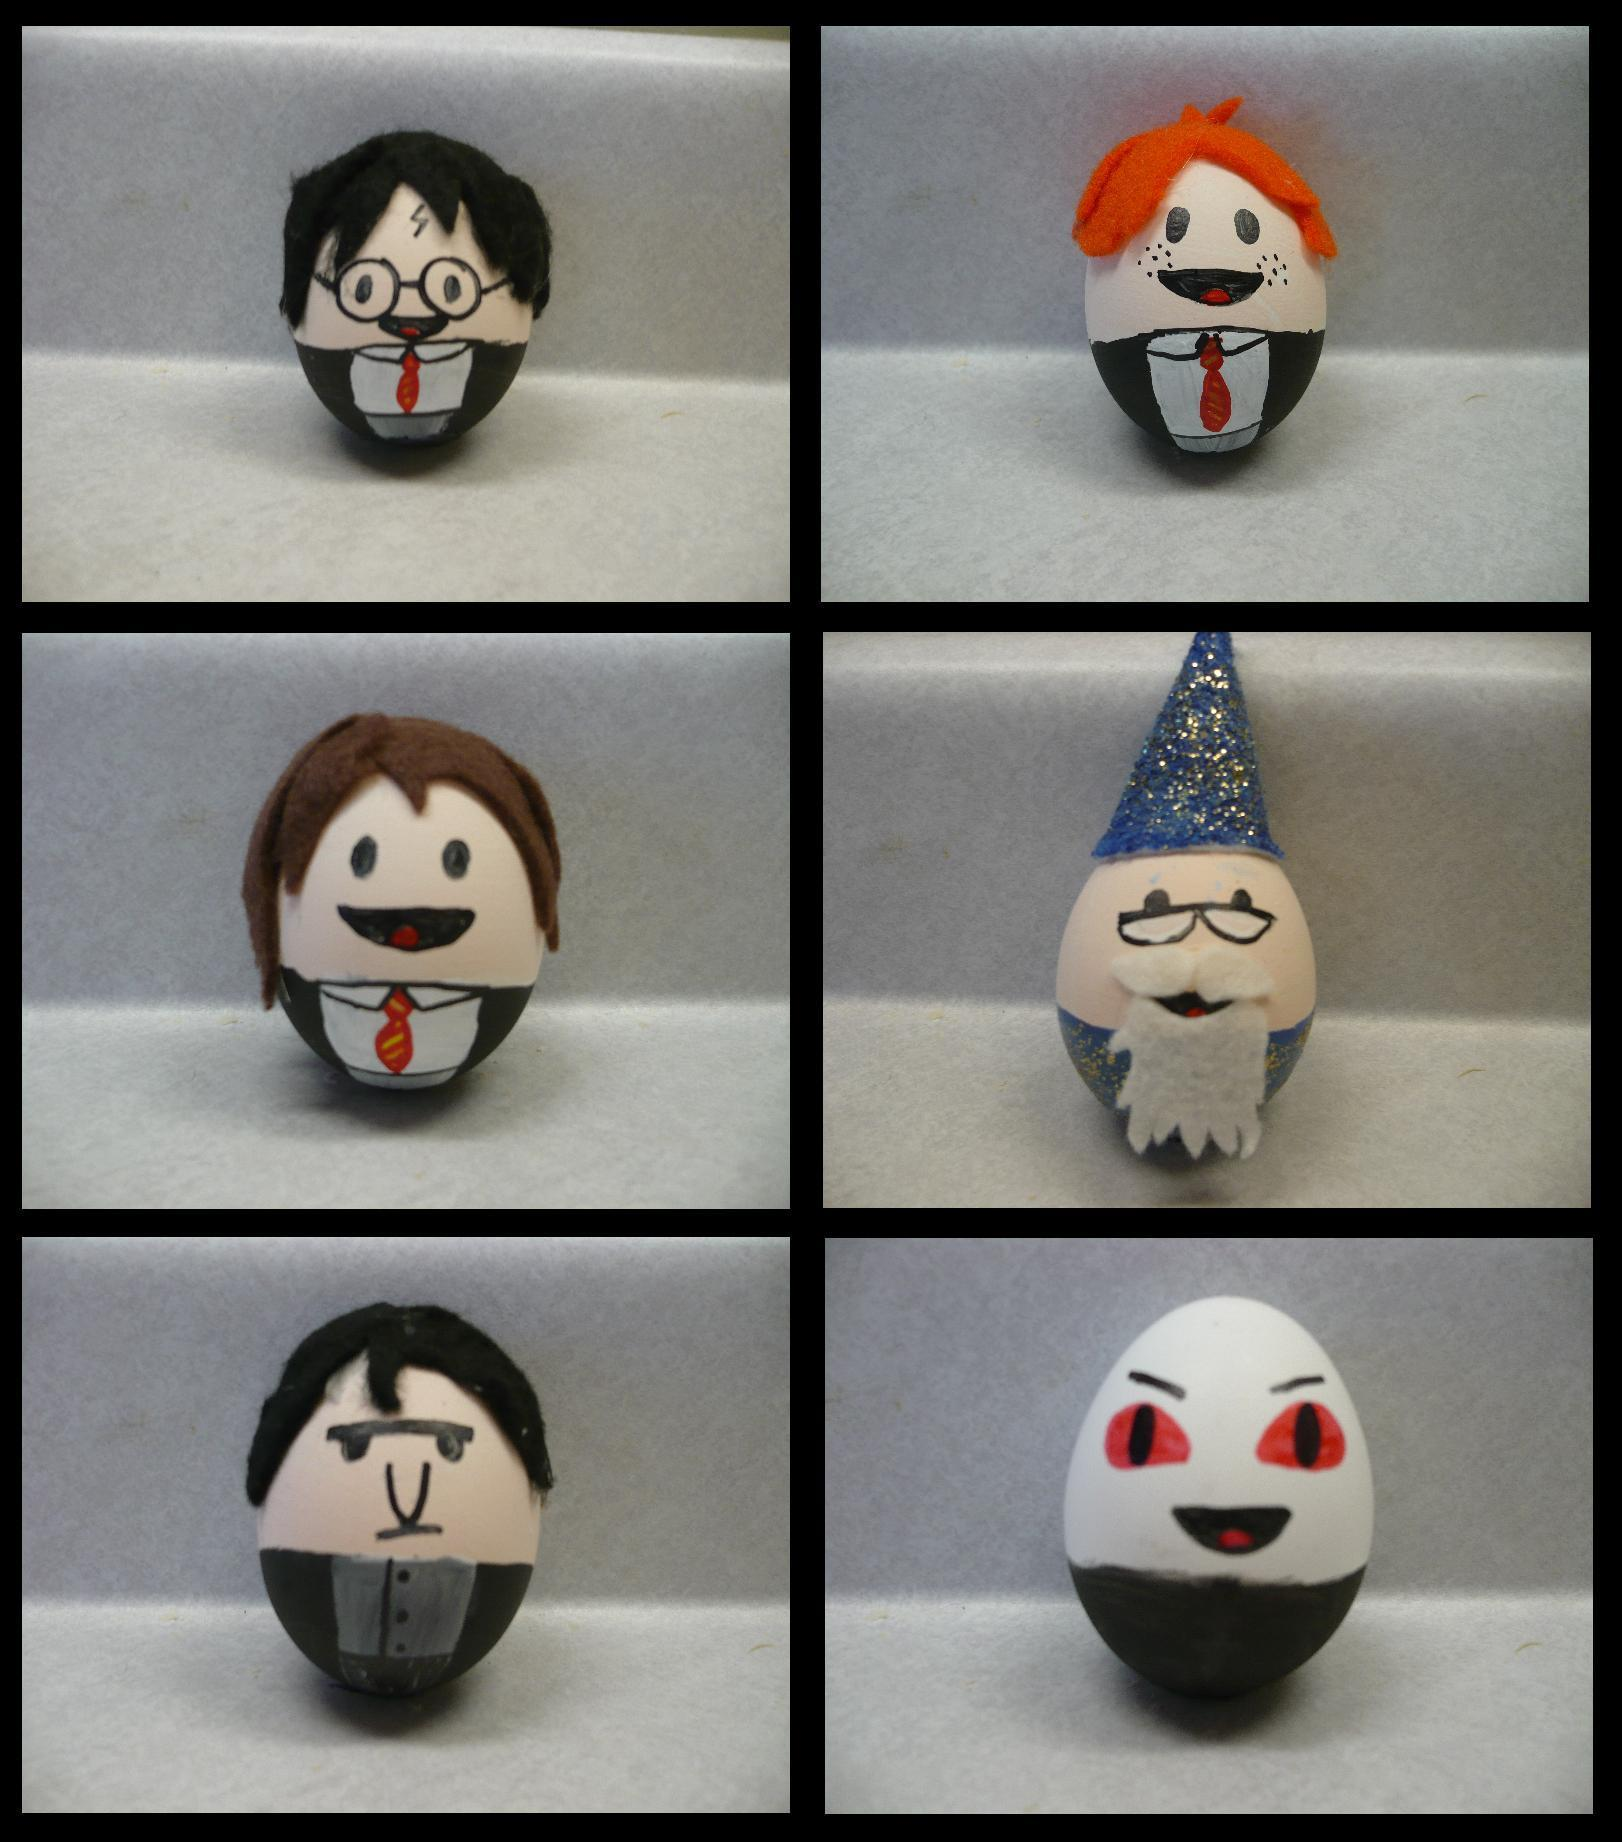 Harry Potter Book Easter Eggs : Nerd alert geeky easter eggs from game of thrones to